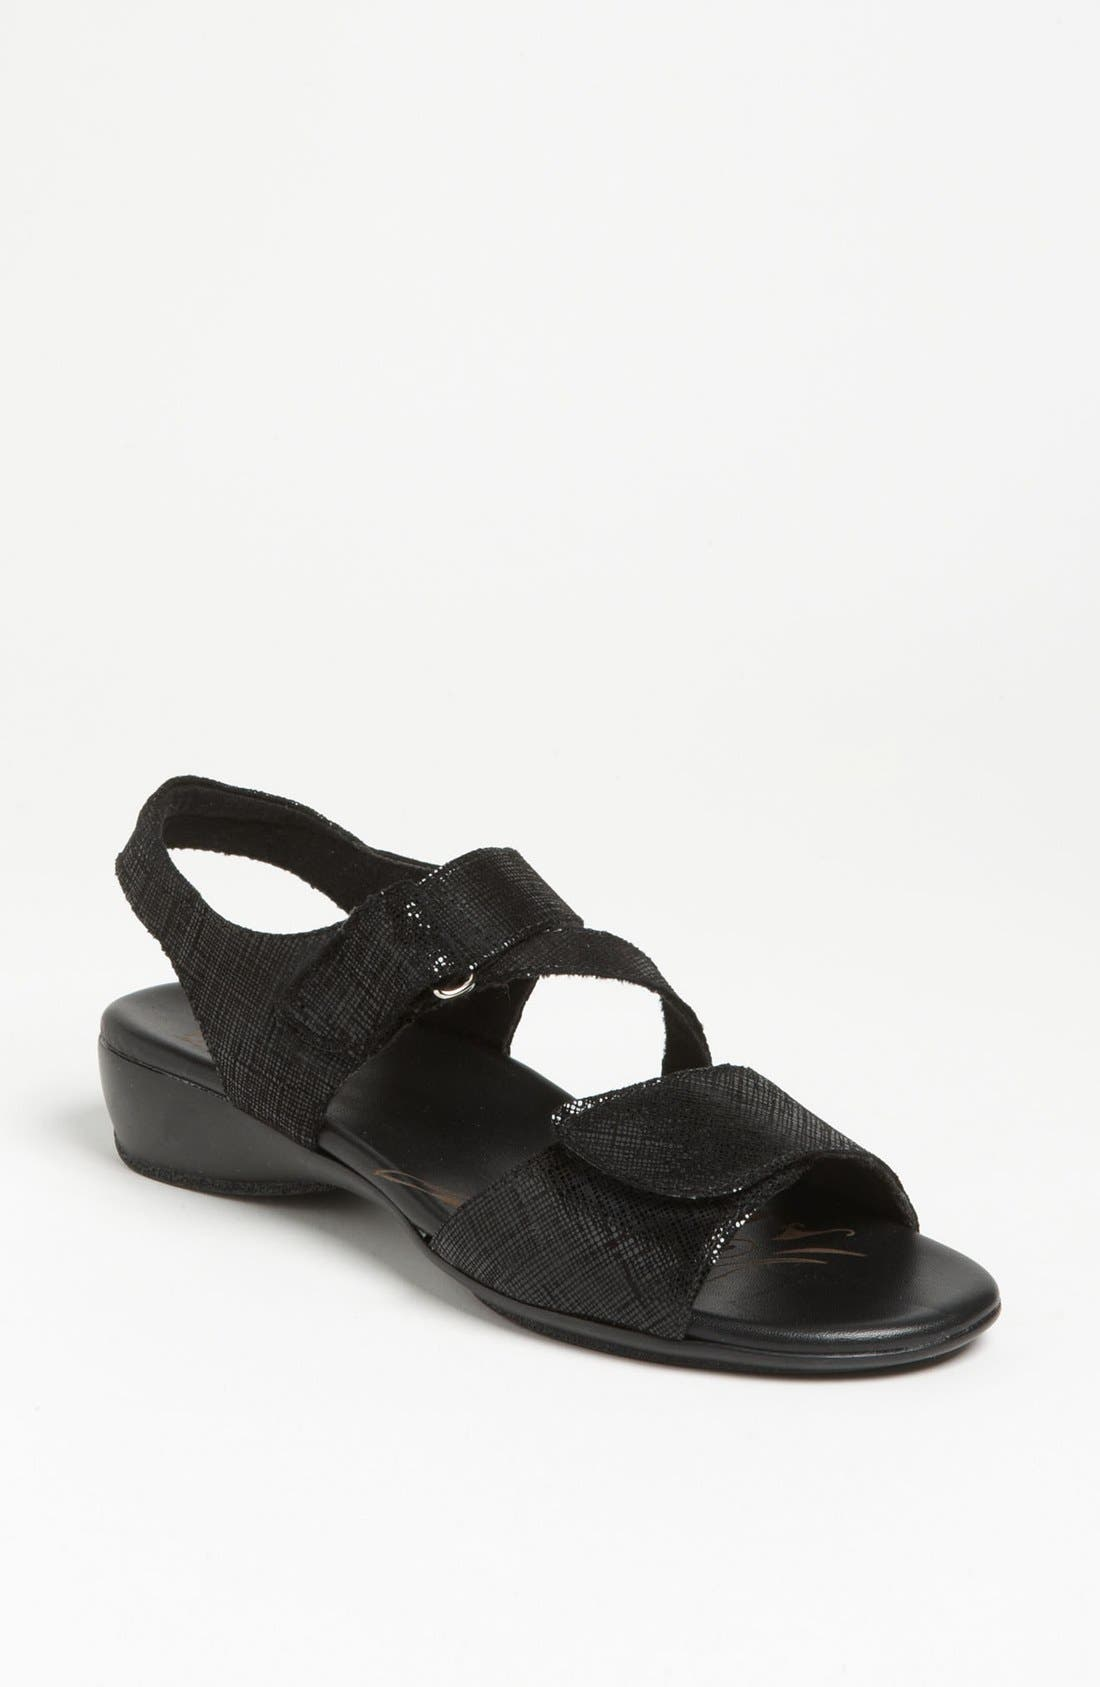 Alternate Image 1 Selected - Munro 'Brenna' Sandal